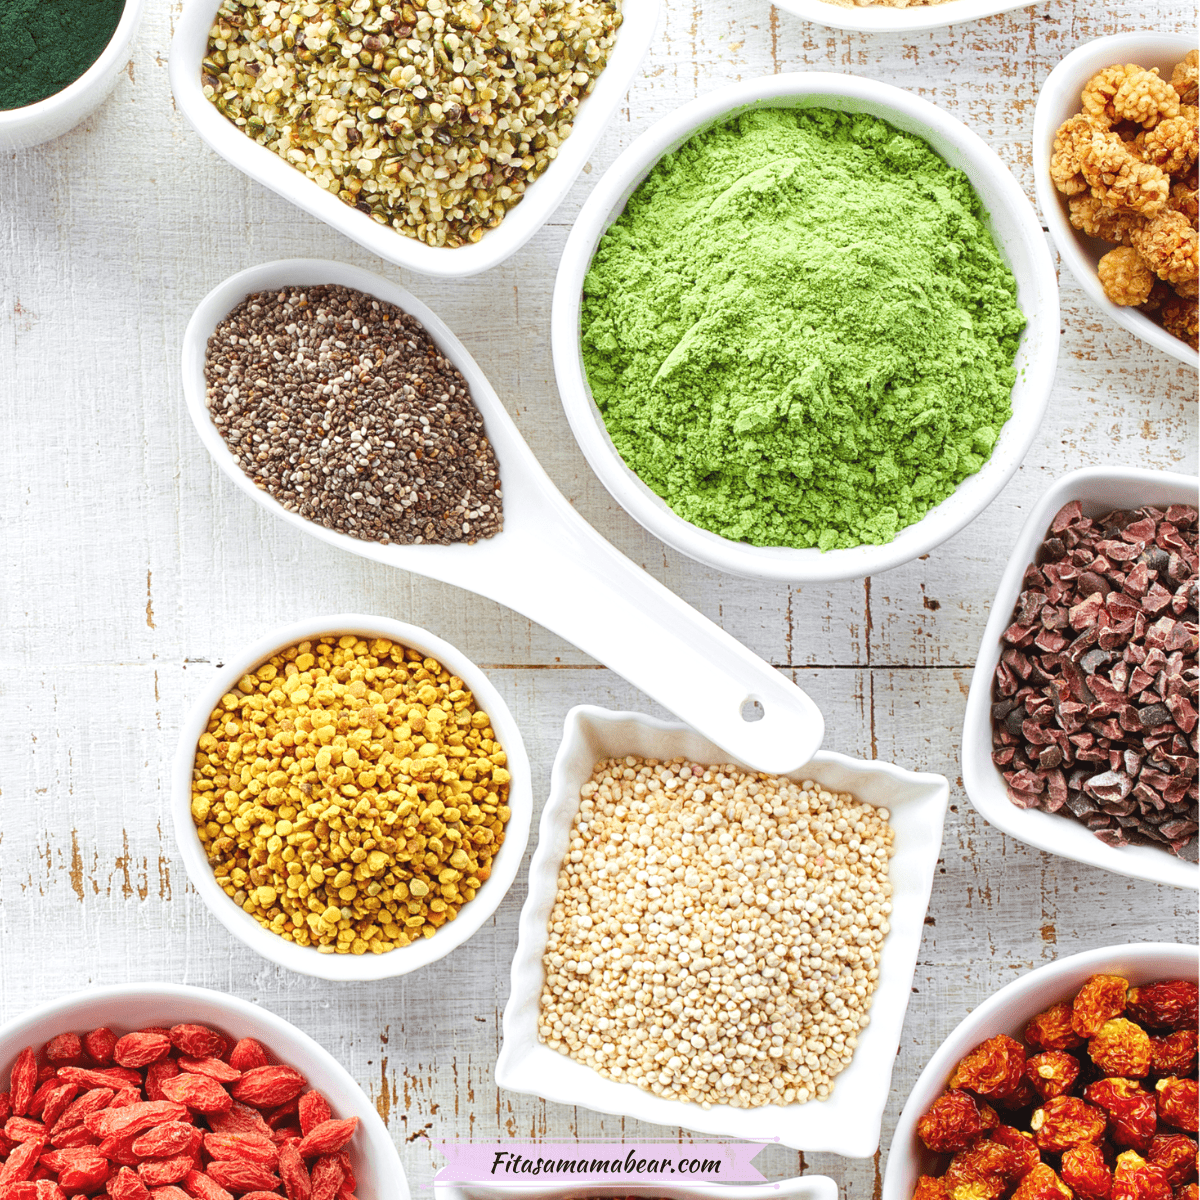 Featured image: multiple superfoods in white bowls